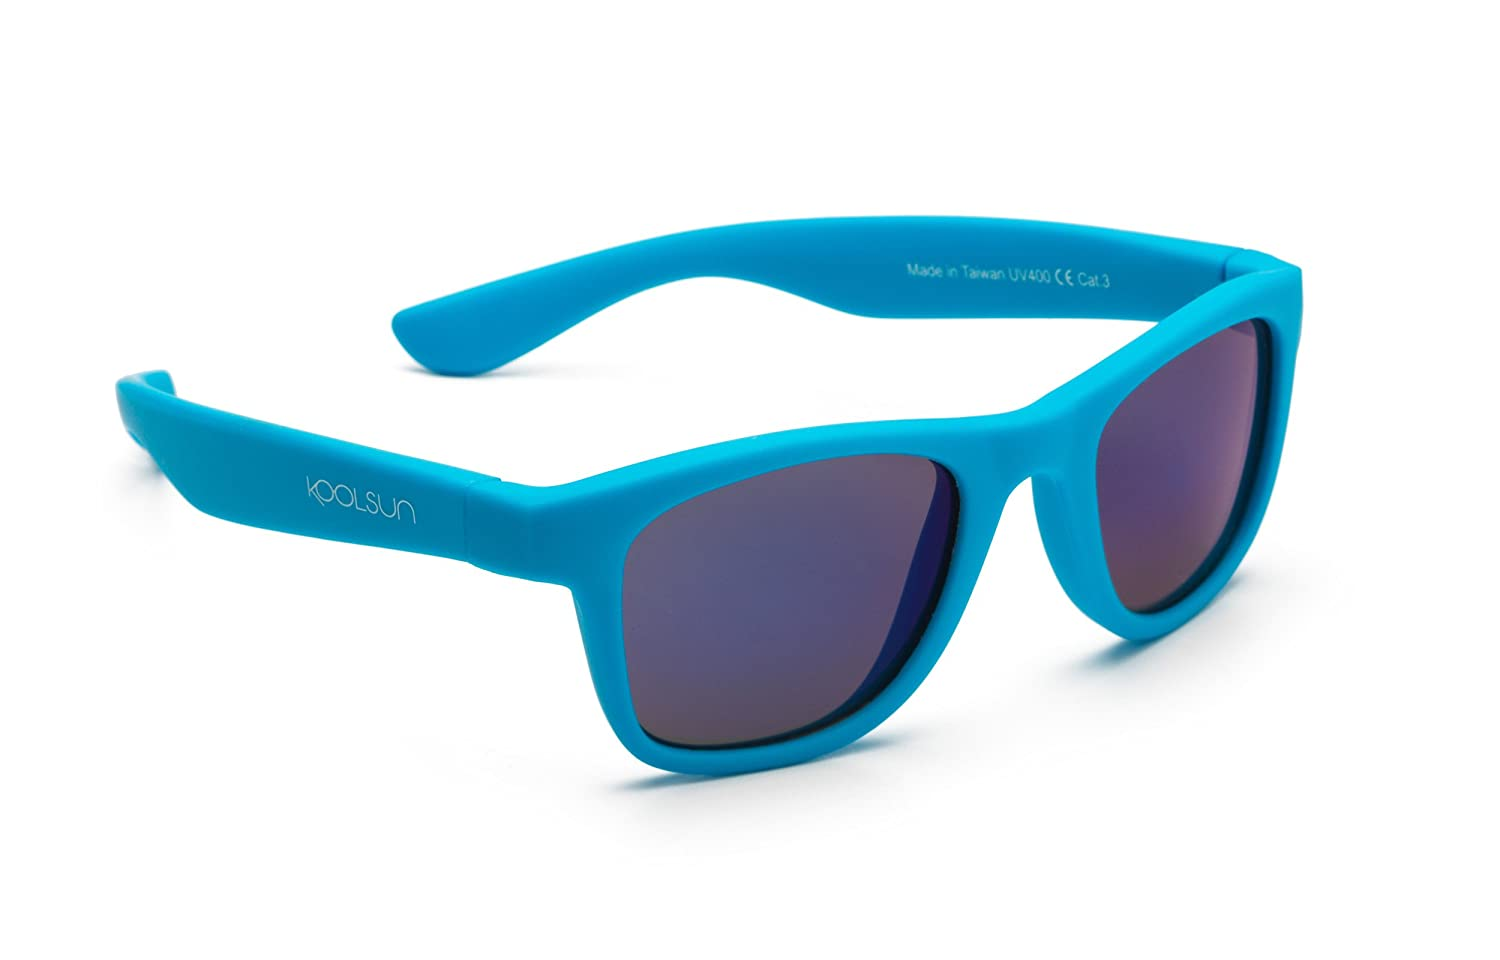 2b035d3dcba954 Koolsun Baby and Child Sun Wave Fashion 1 + Neon blue mirrored 100% UV  Protection